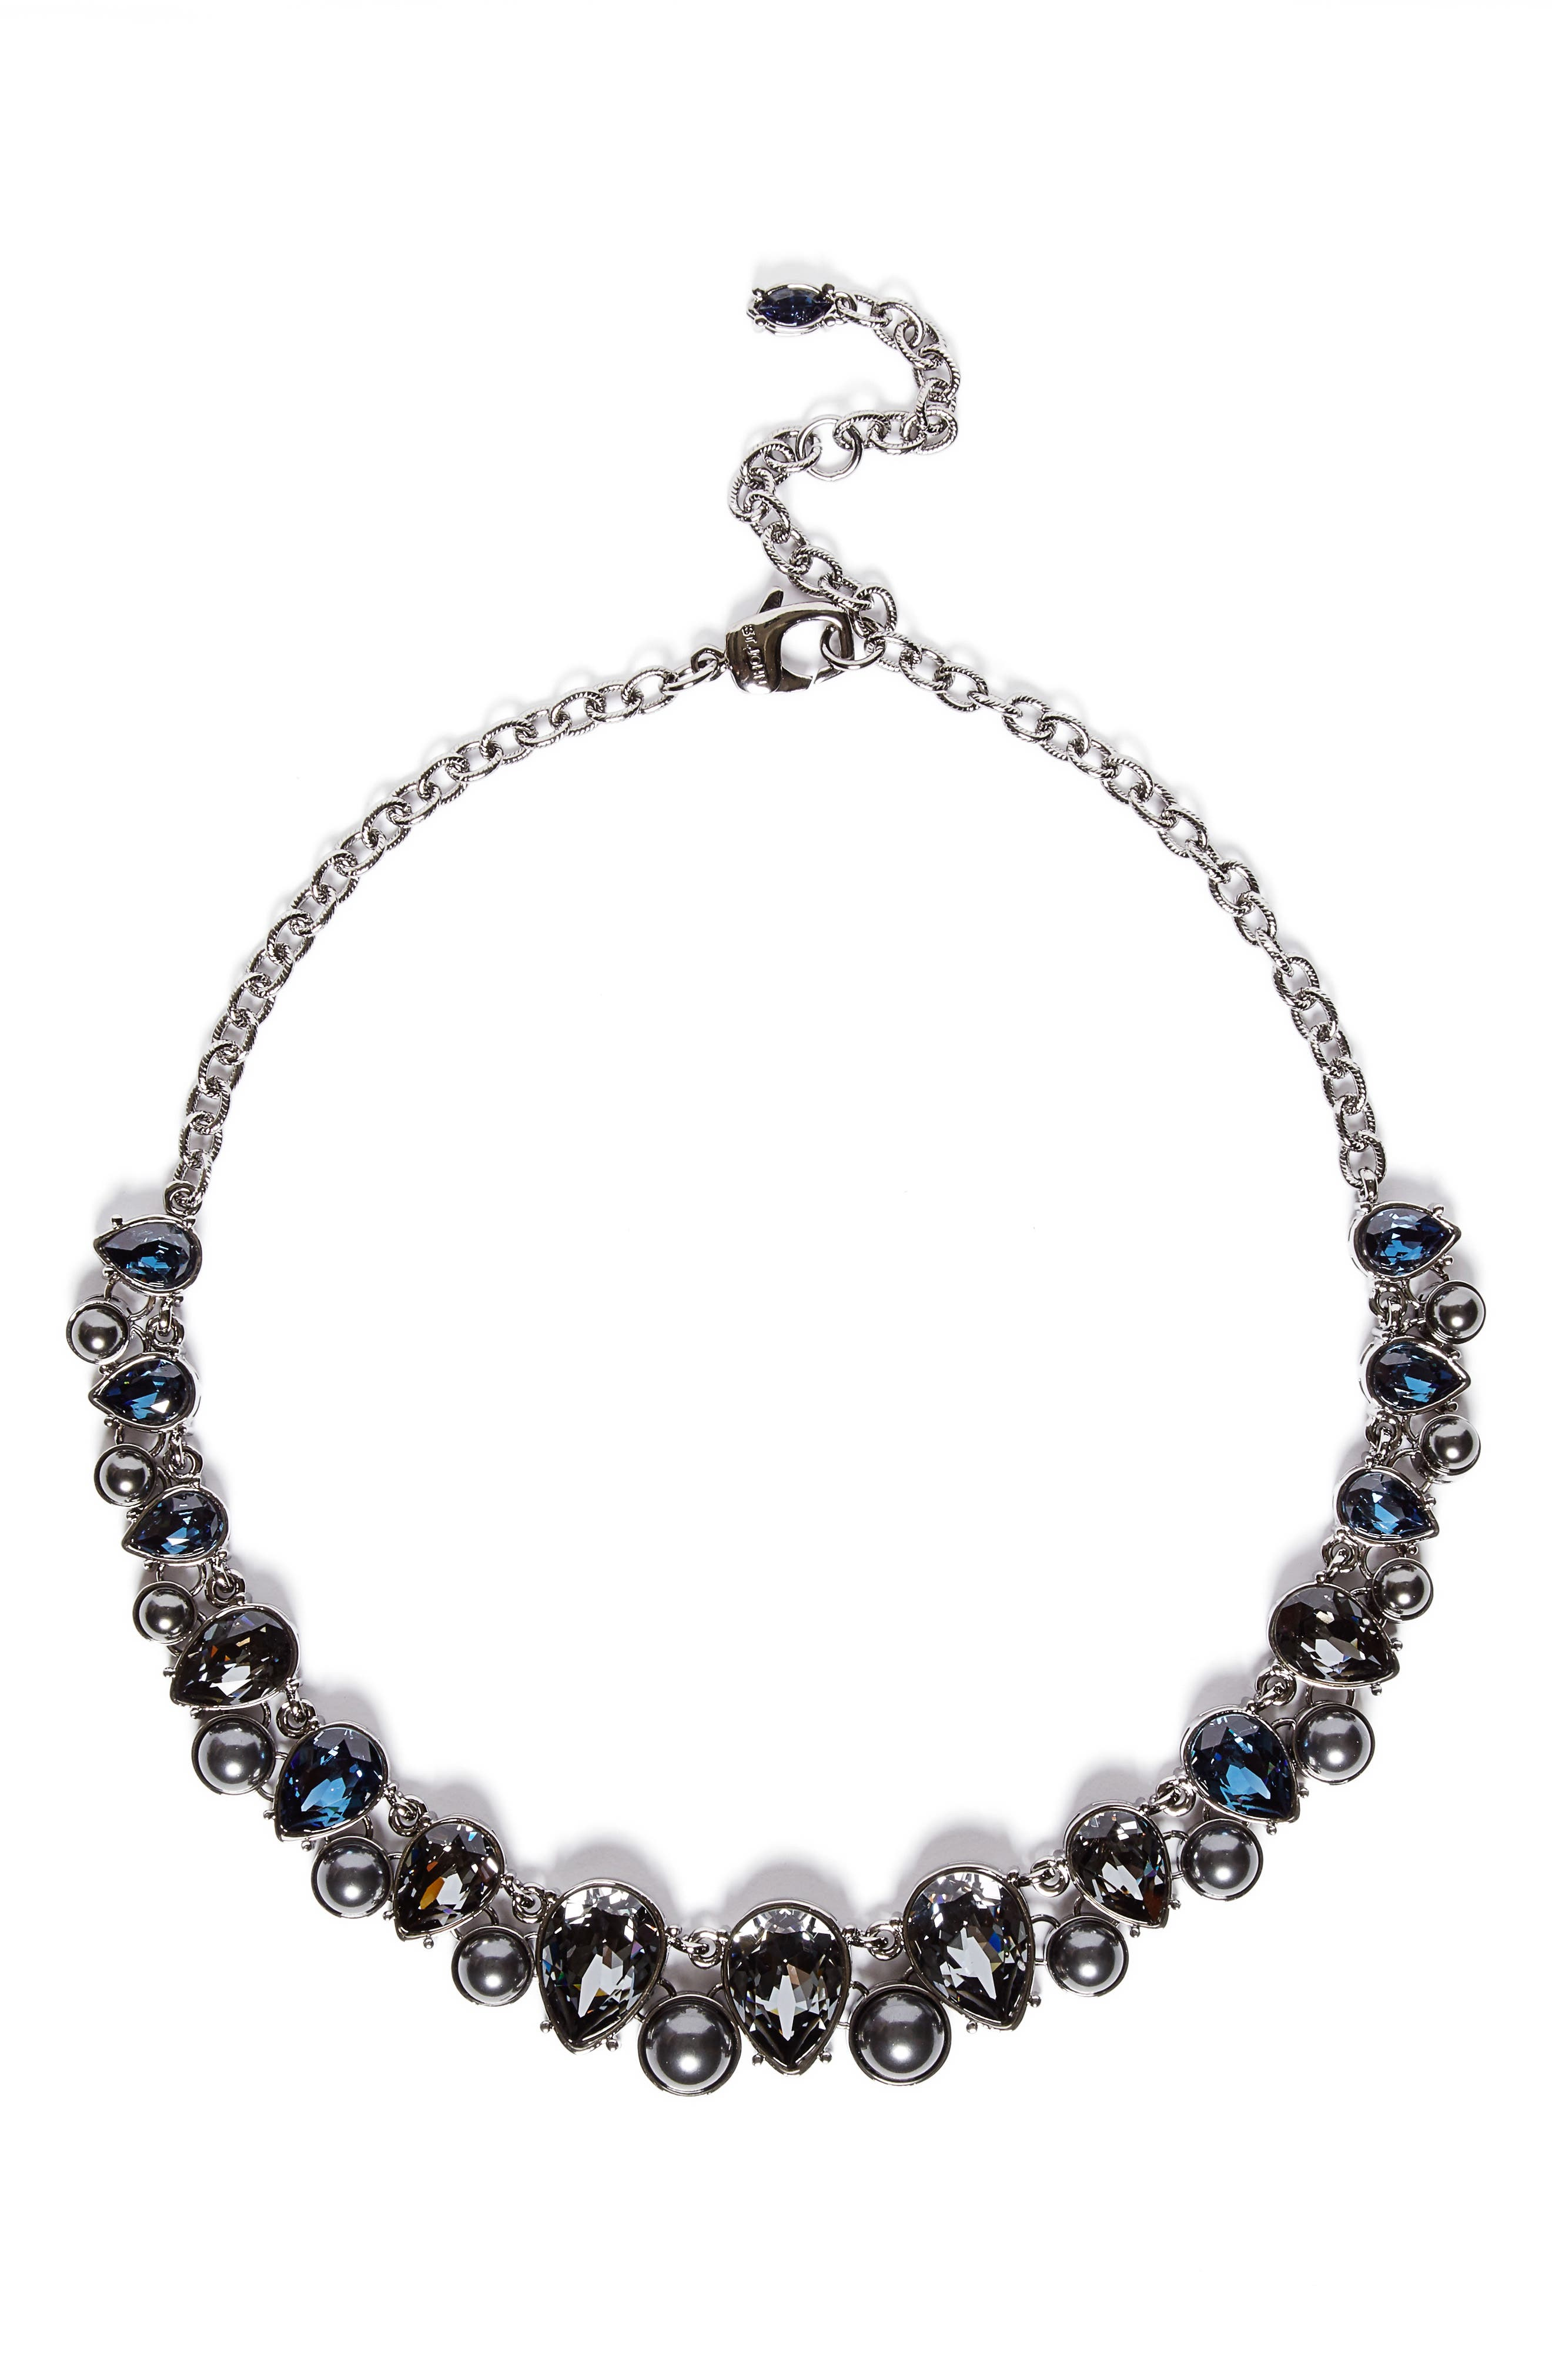 Main Image - St. John Collection Swarovski Crystal & Imitation Pearl Necklace